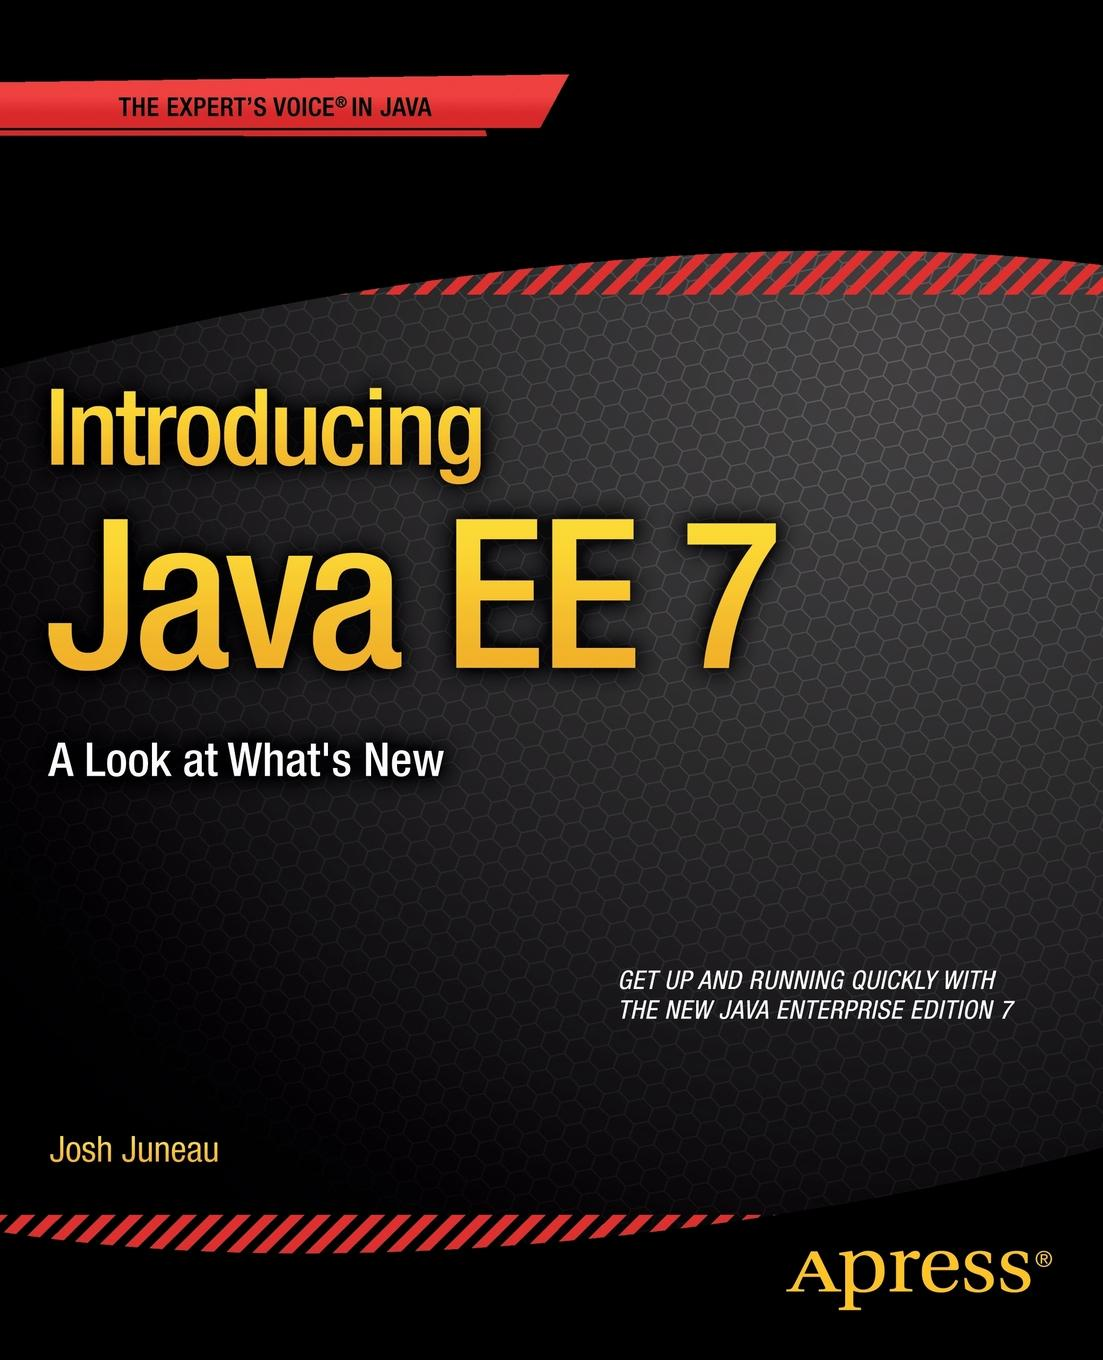 Josh Juneau Introducing Java Ee 7. A Look at What's New